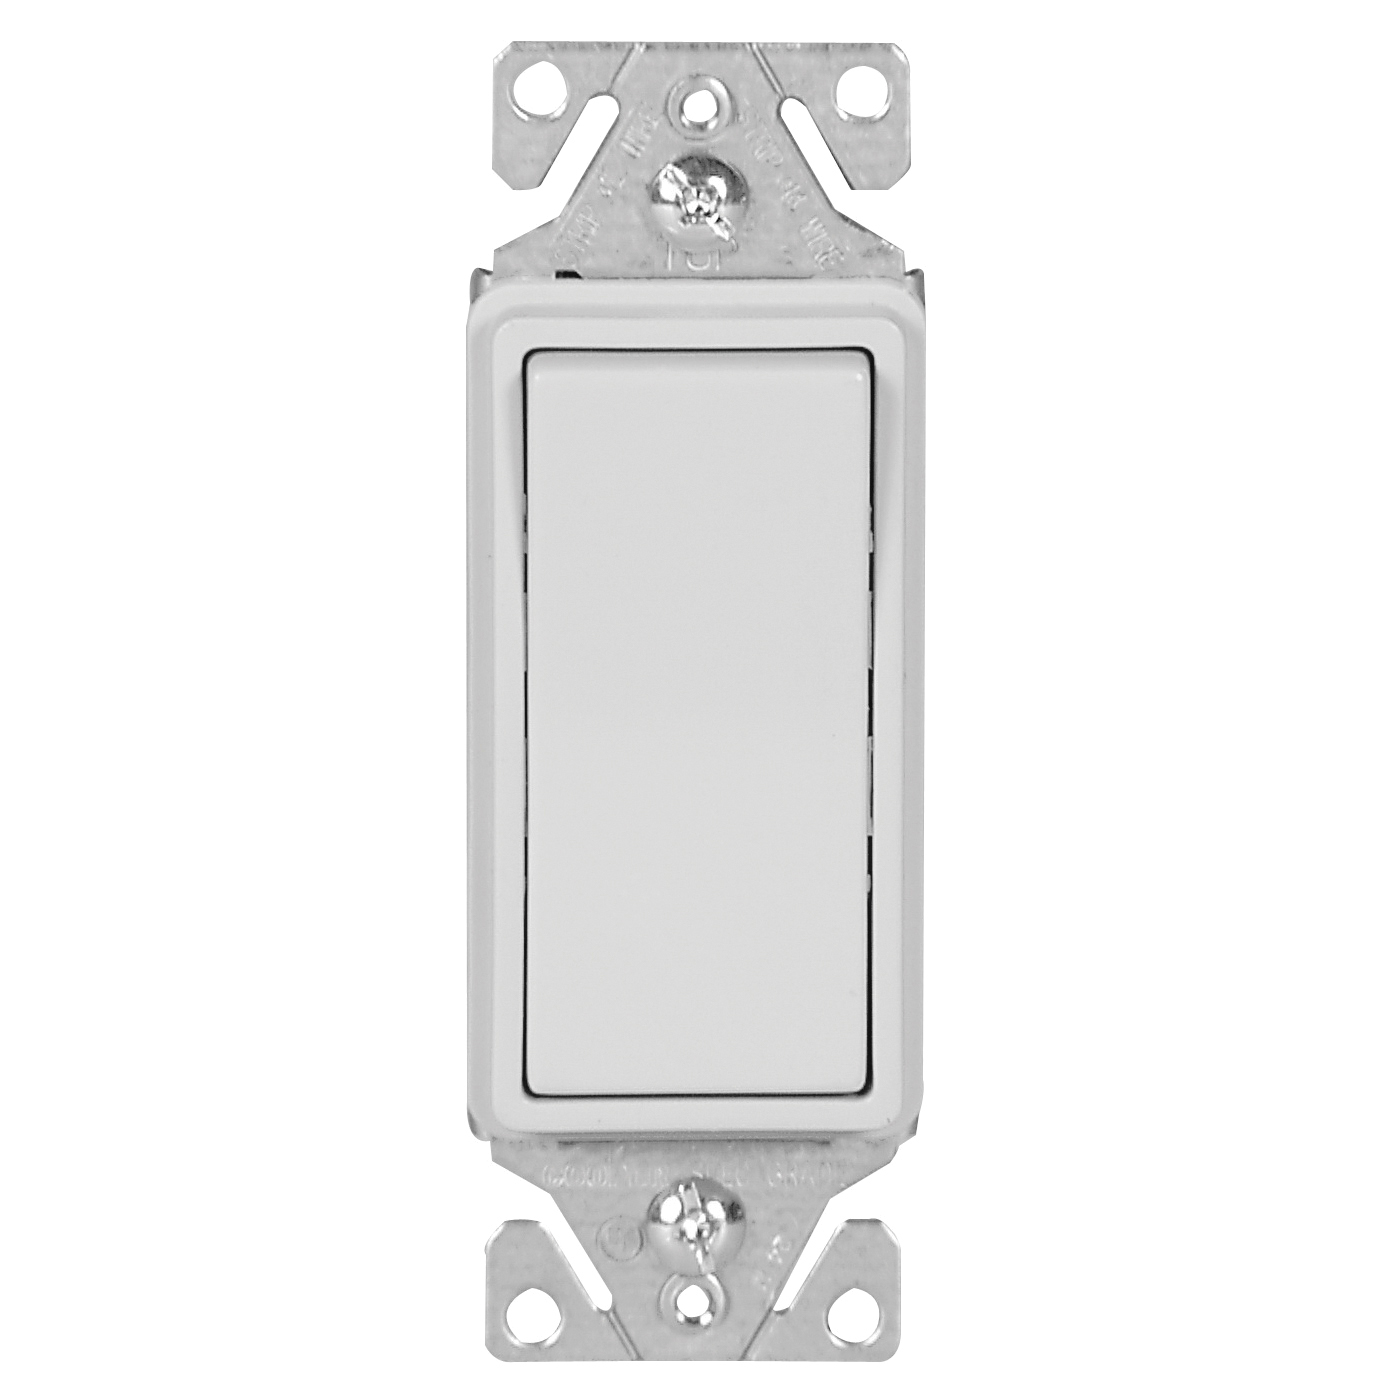 Picture of Eaton Wiring Devices 7500 Series 7513W-BOX Rocker Switch, 15 A, 120/277 V, 3-Way, Lead Wire Terminal, White